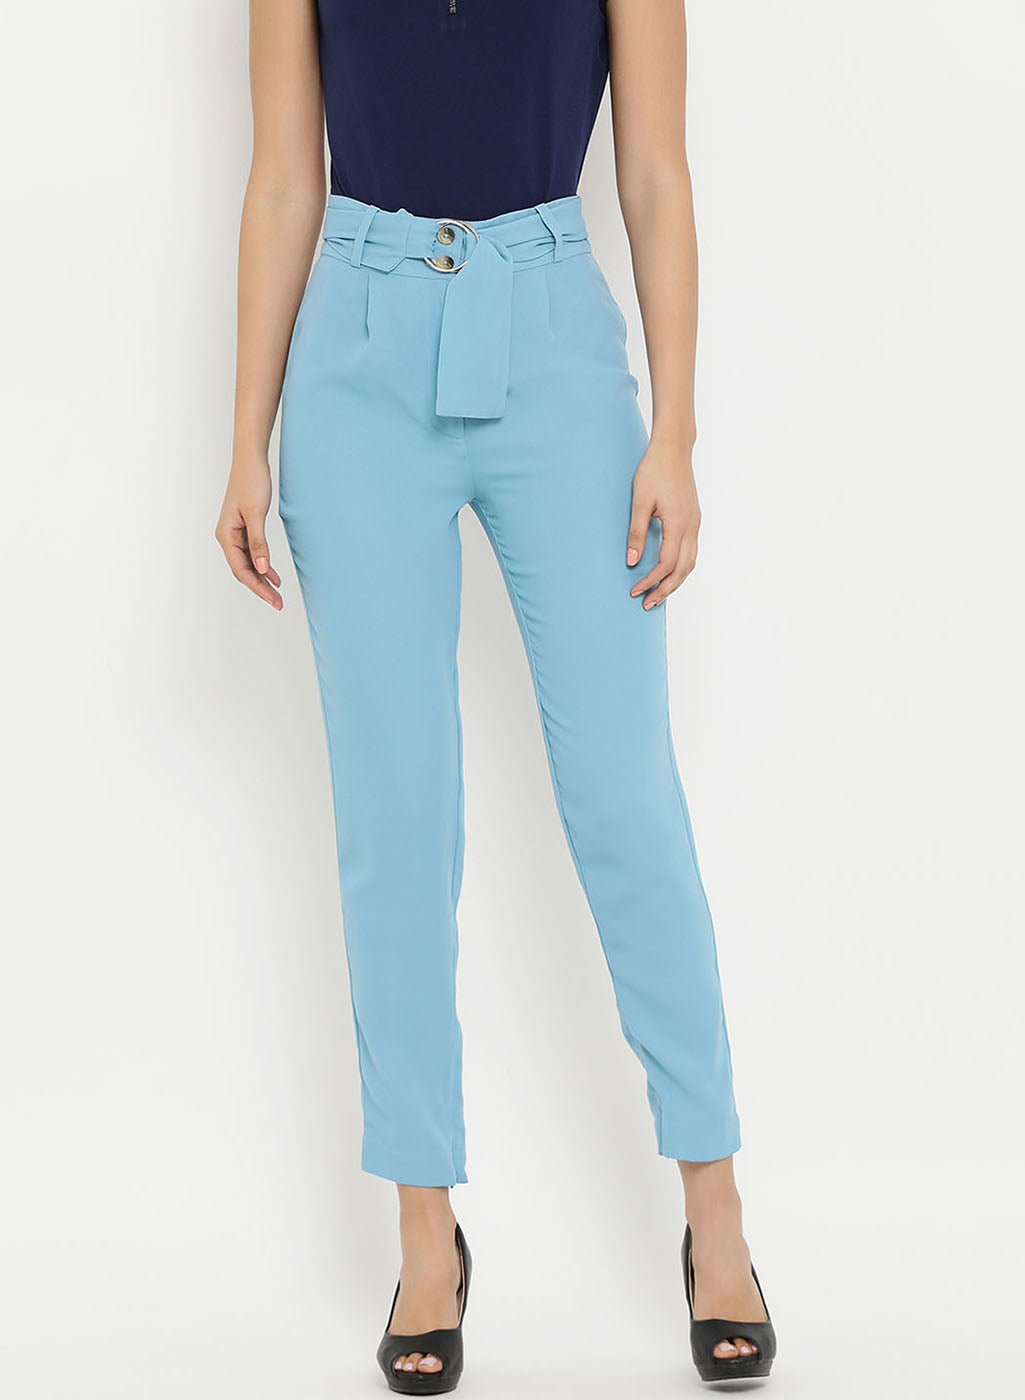 Cropped Trouser (Additional 23% OFF)